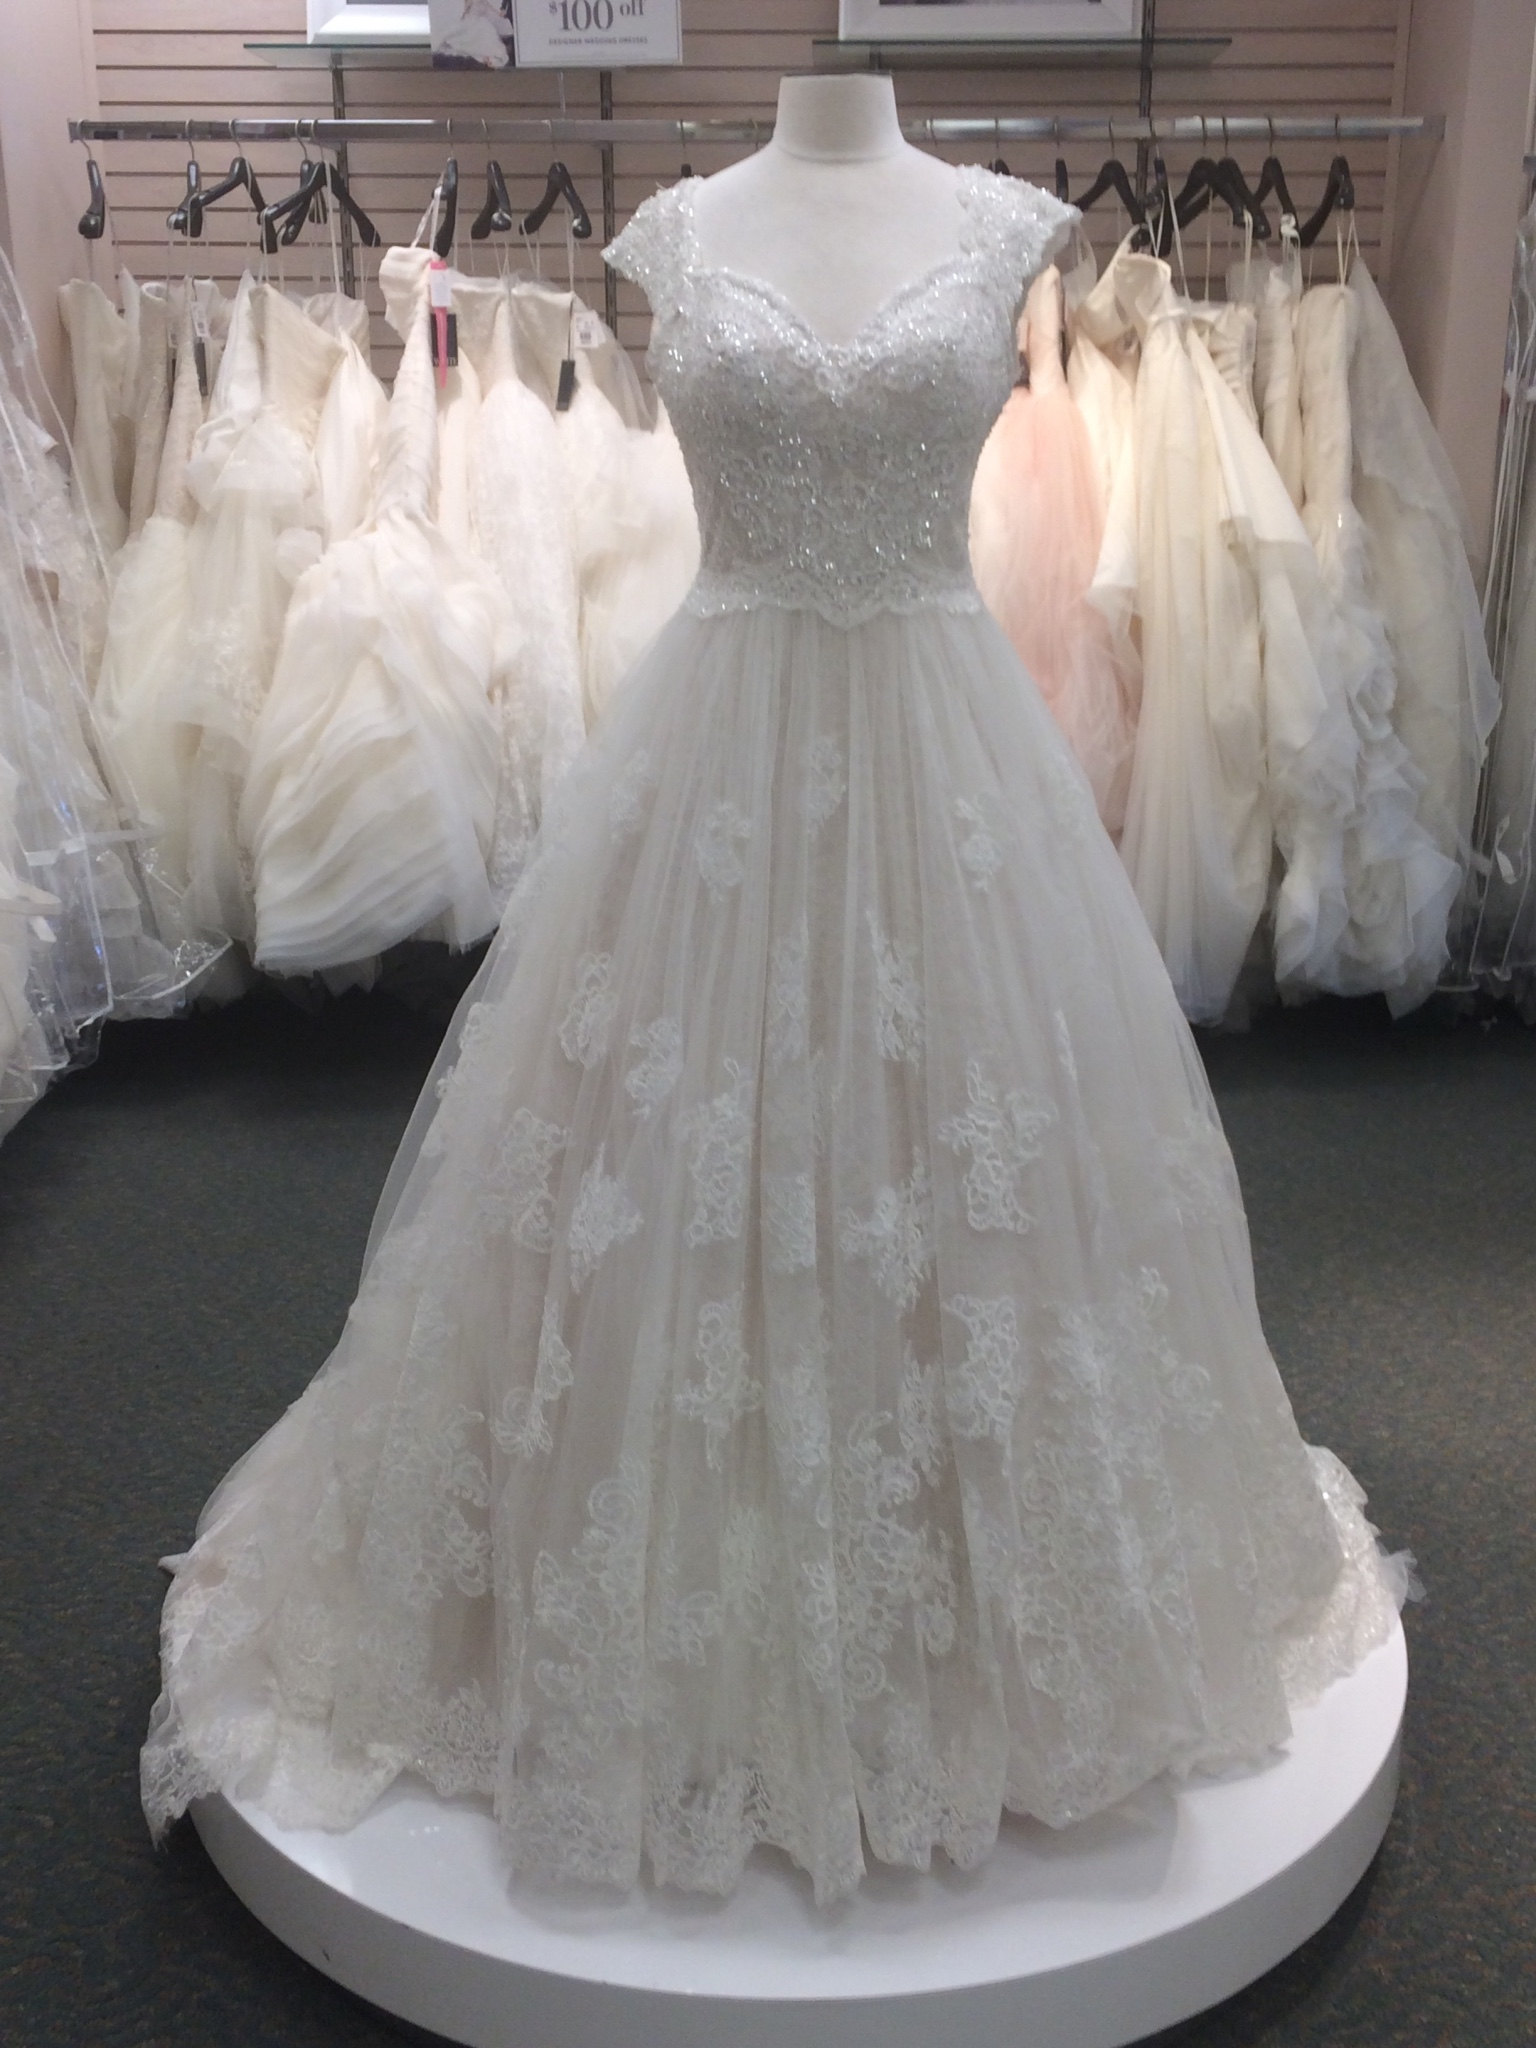 David S Bridal 1820 Gunbarrell Road Suite 400 Gunbarrell